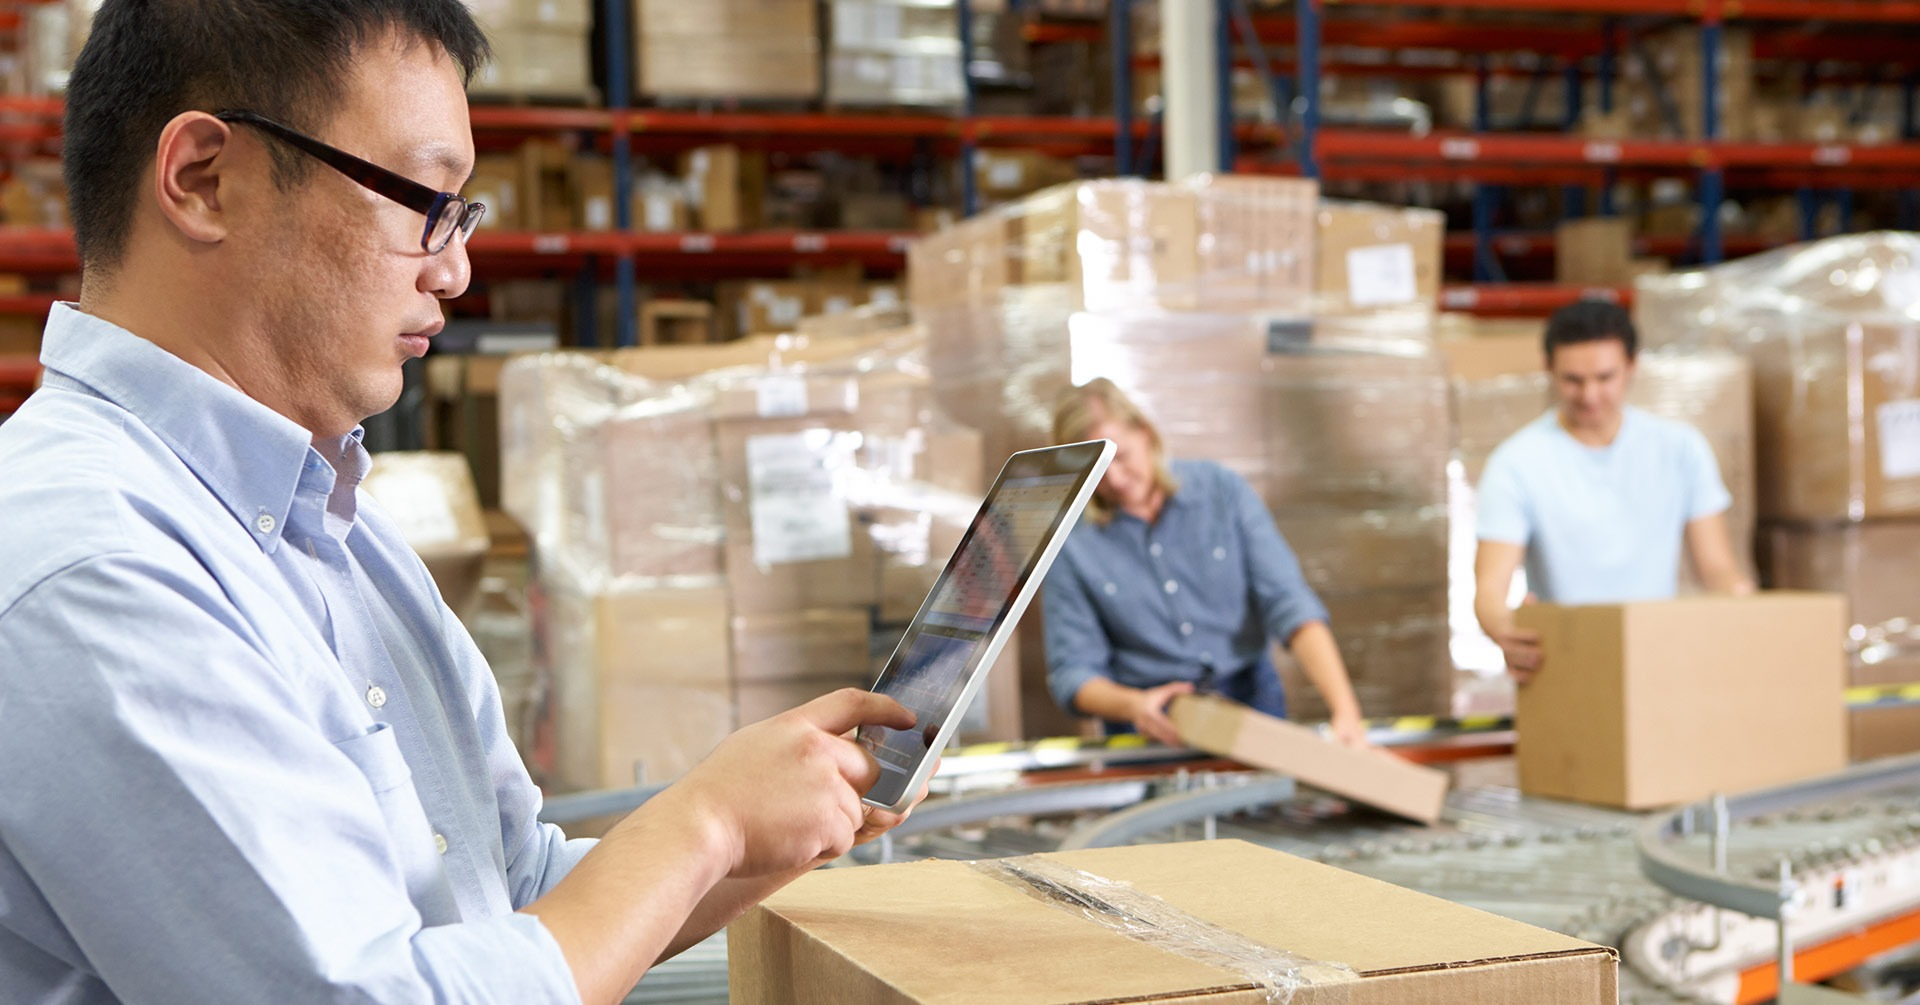 Will this solution increase visibility and transparency with my suppliers and employees